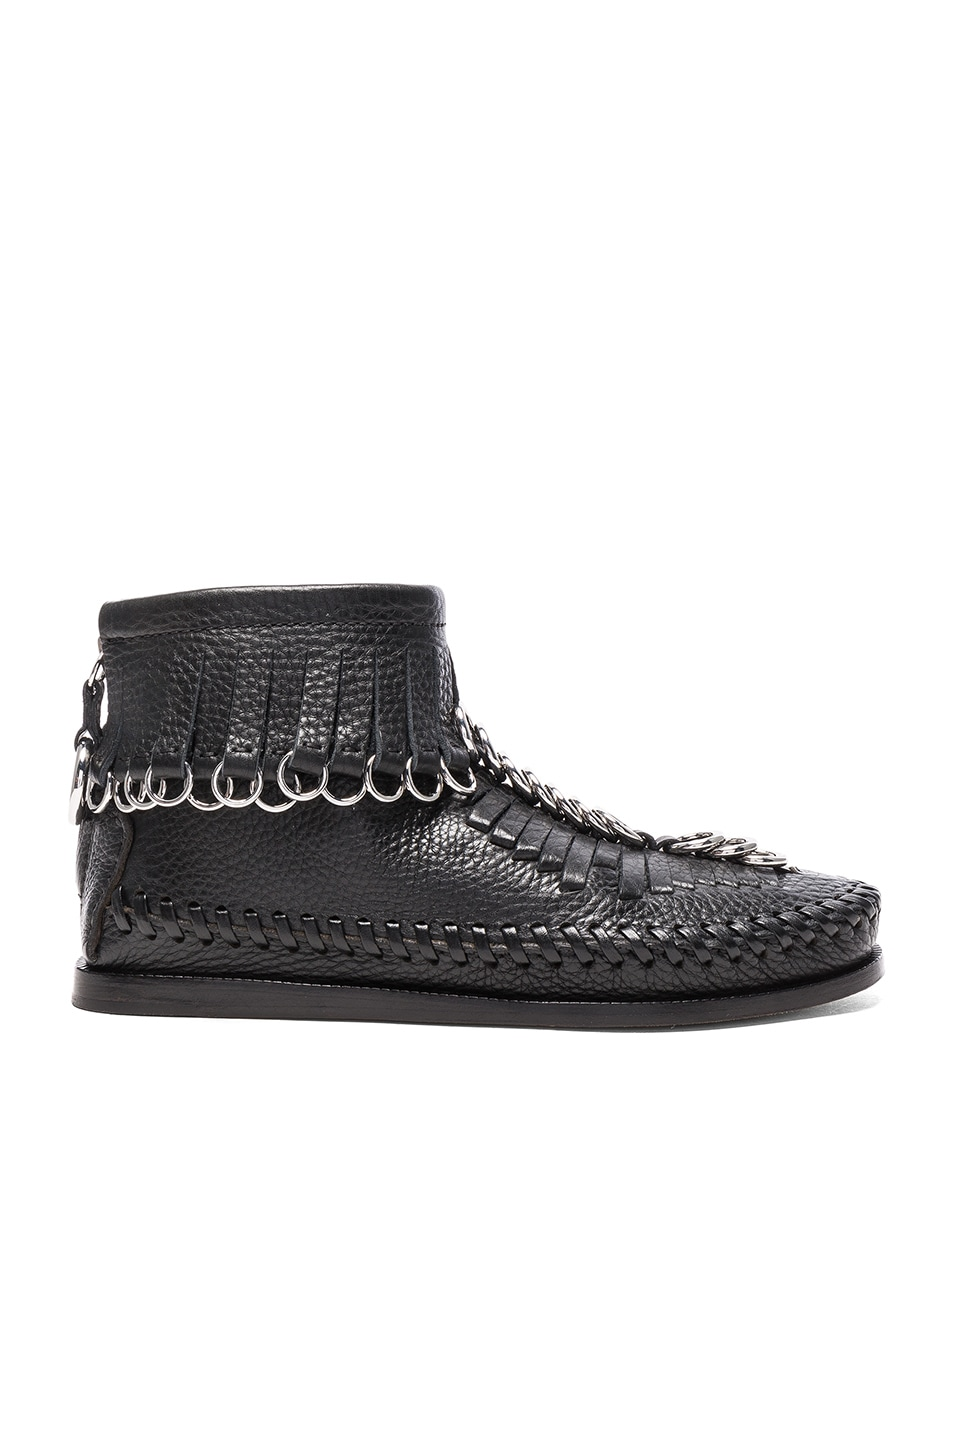 Image 1 of Alexander Wang Leather Montana Boots in Black